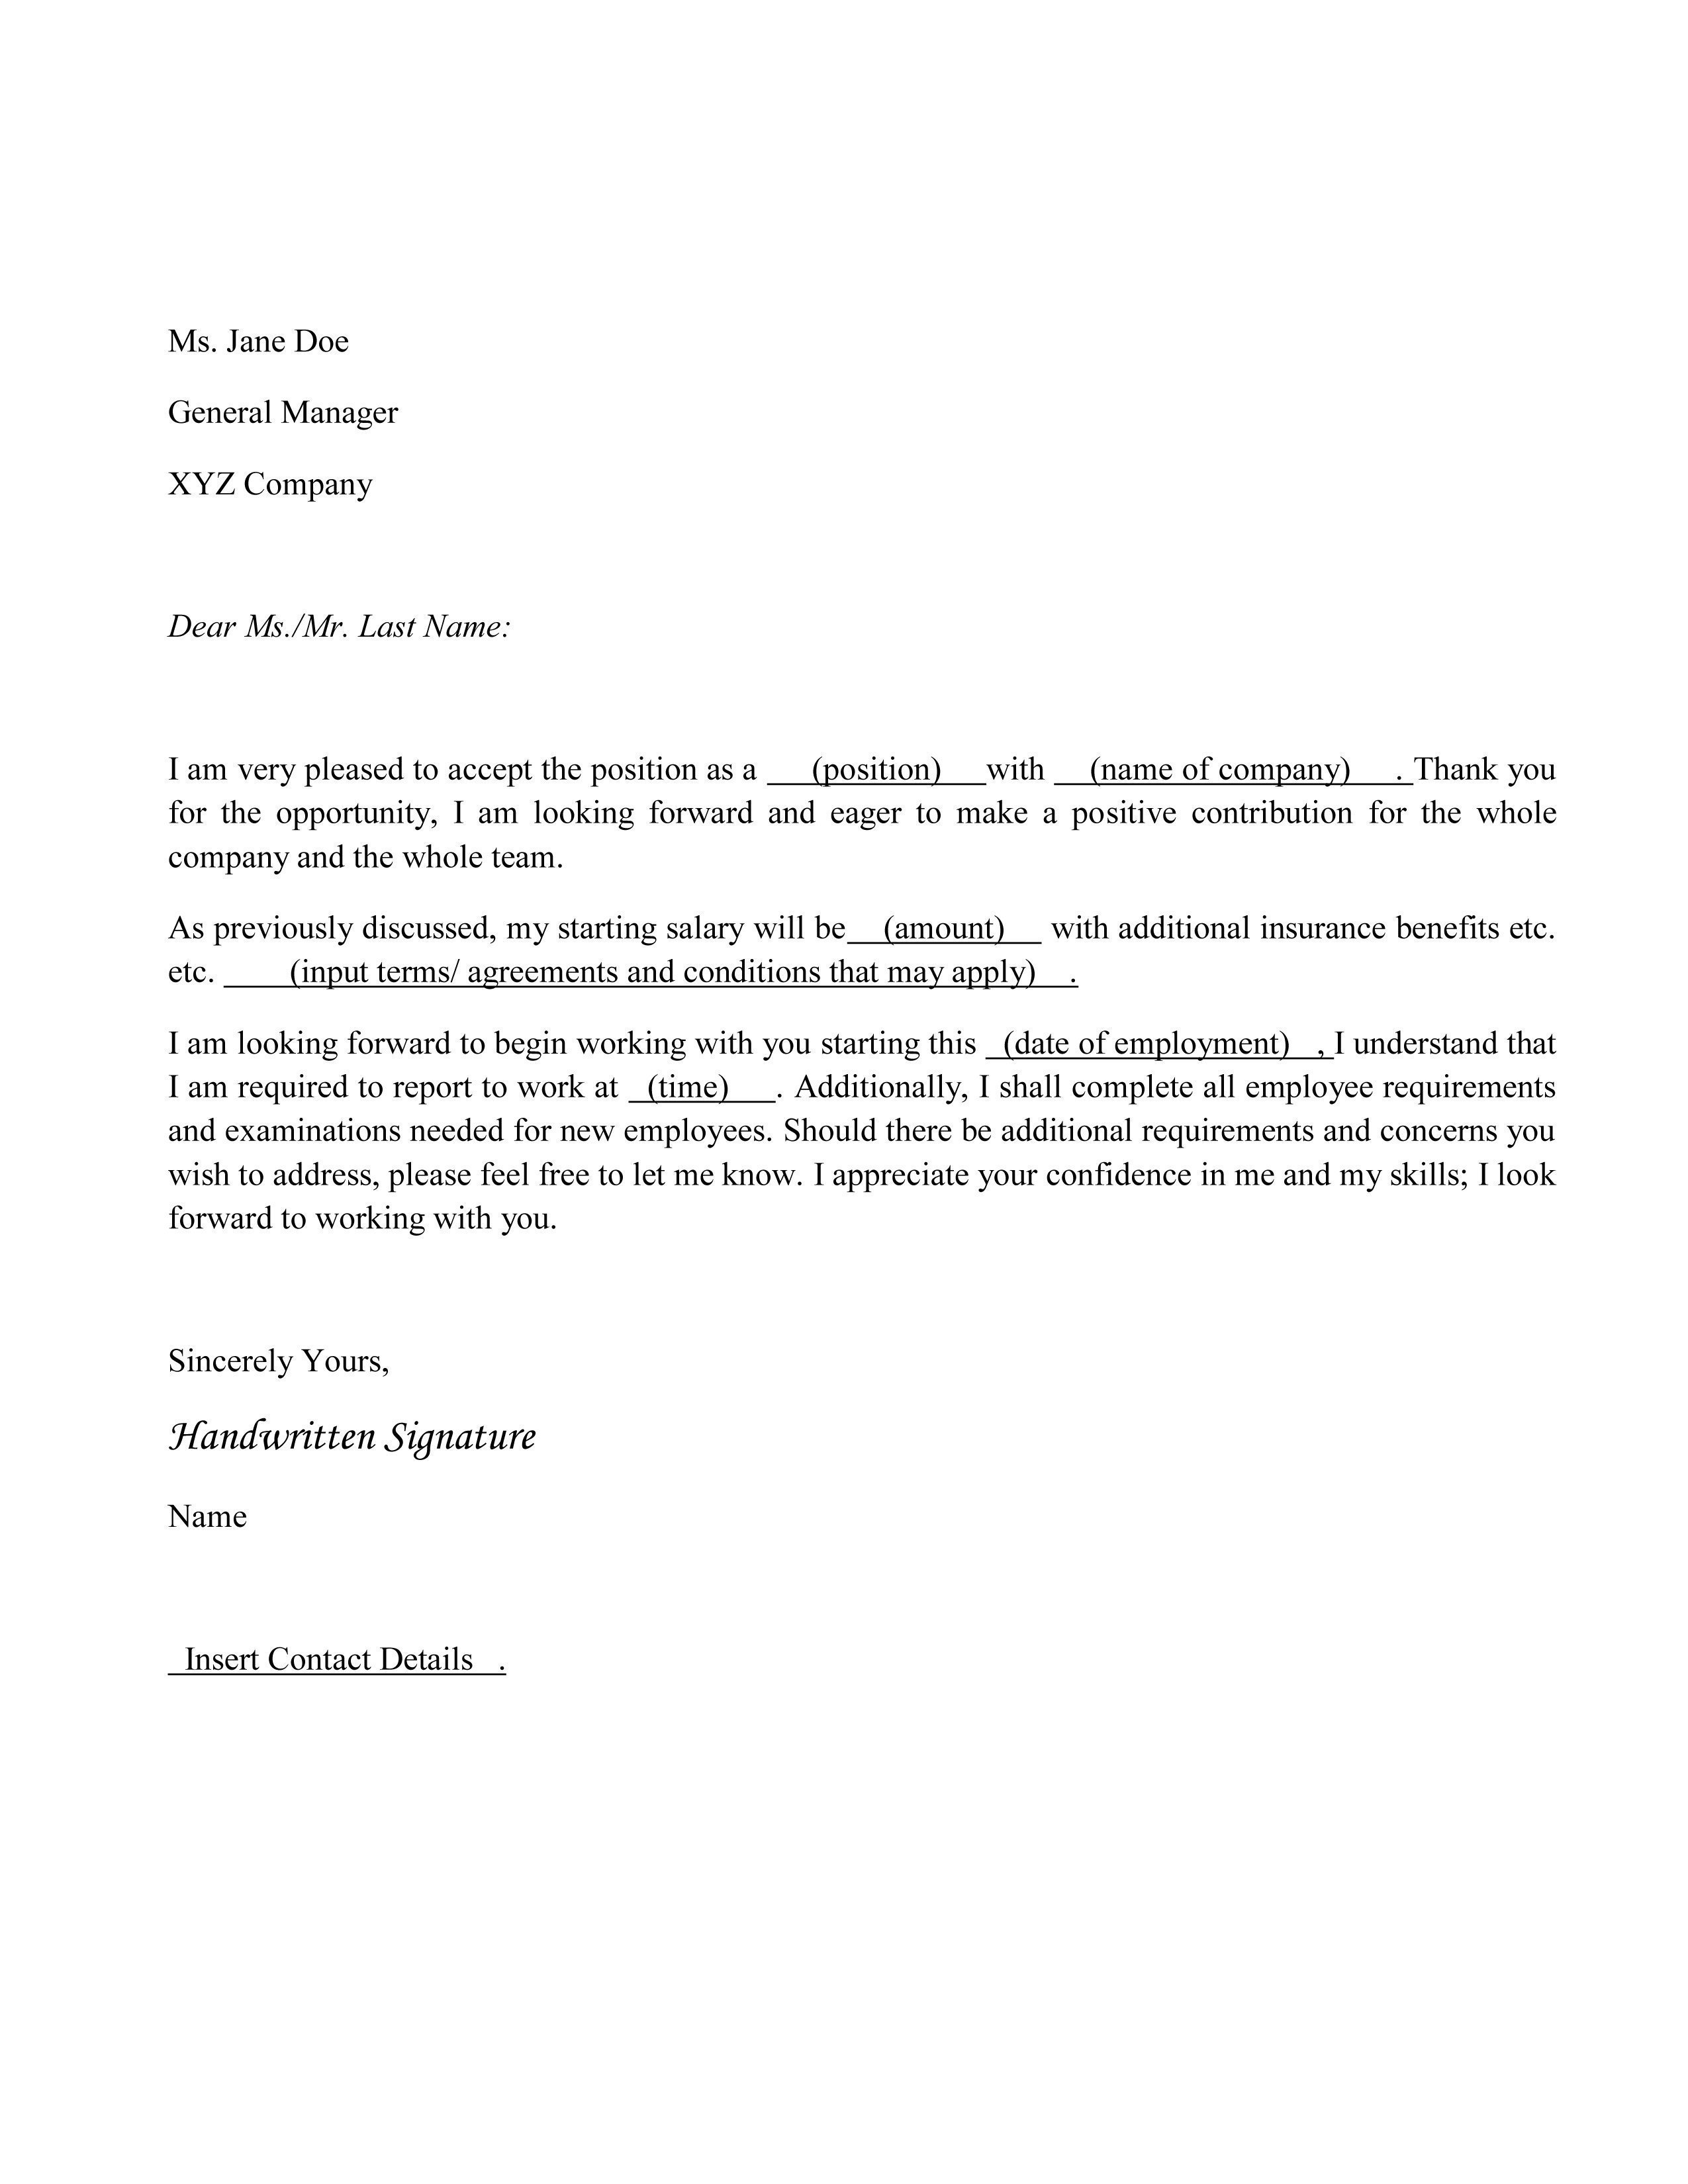 Pin by Amie Burkholder on Law Dogs Acceptance letter